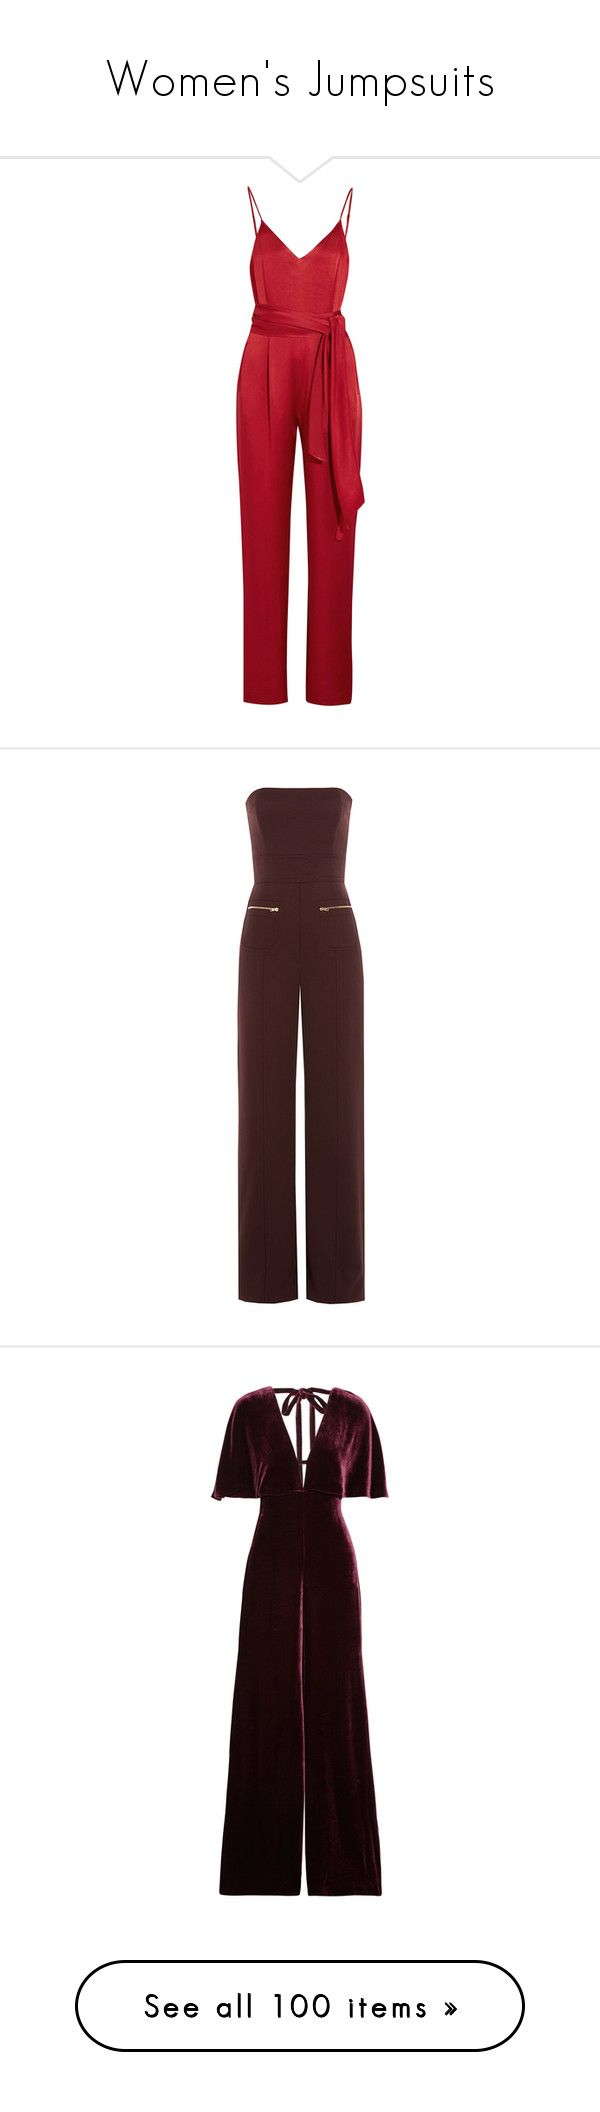 """""""Women's Jumpsuits"""" by danielle-valentine-666 ❤ liked on Polyvore featuring jumpsuits, jumpsuit, dresses, rompers, pants, playsuits, red, red satin romper, red jumpsuit and jump suit"""